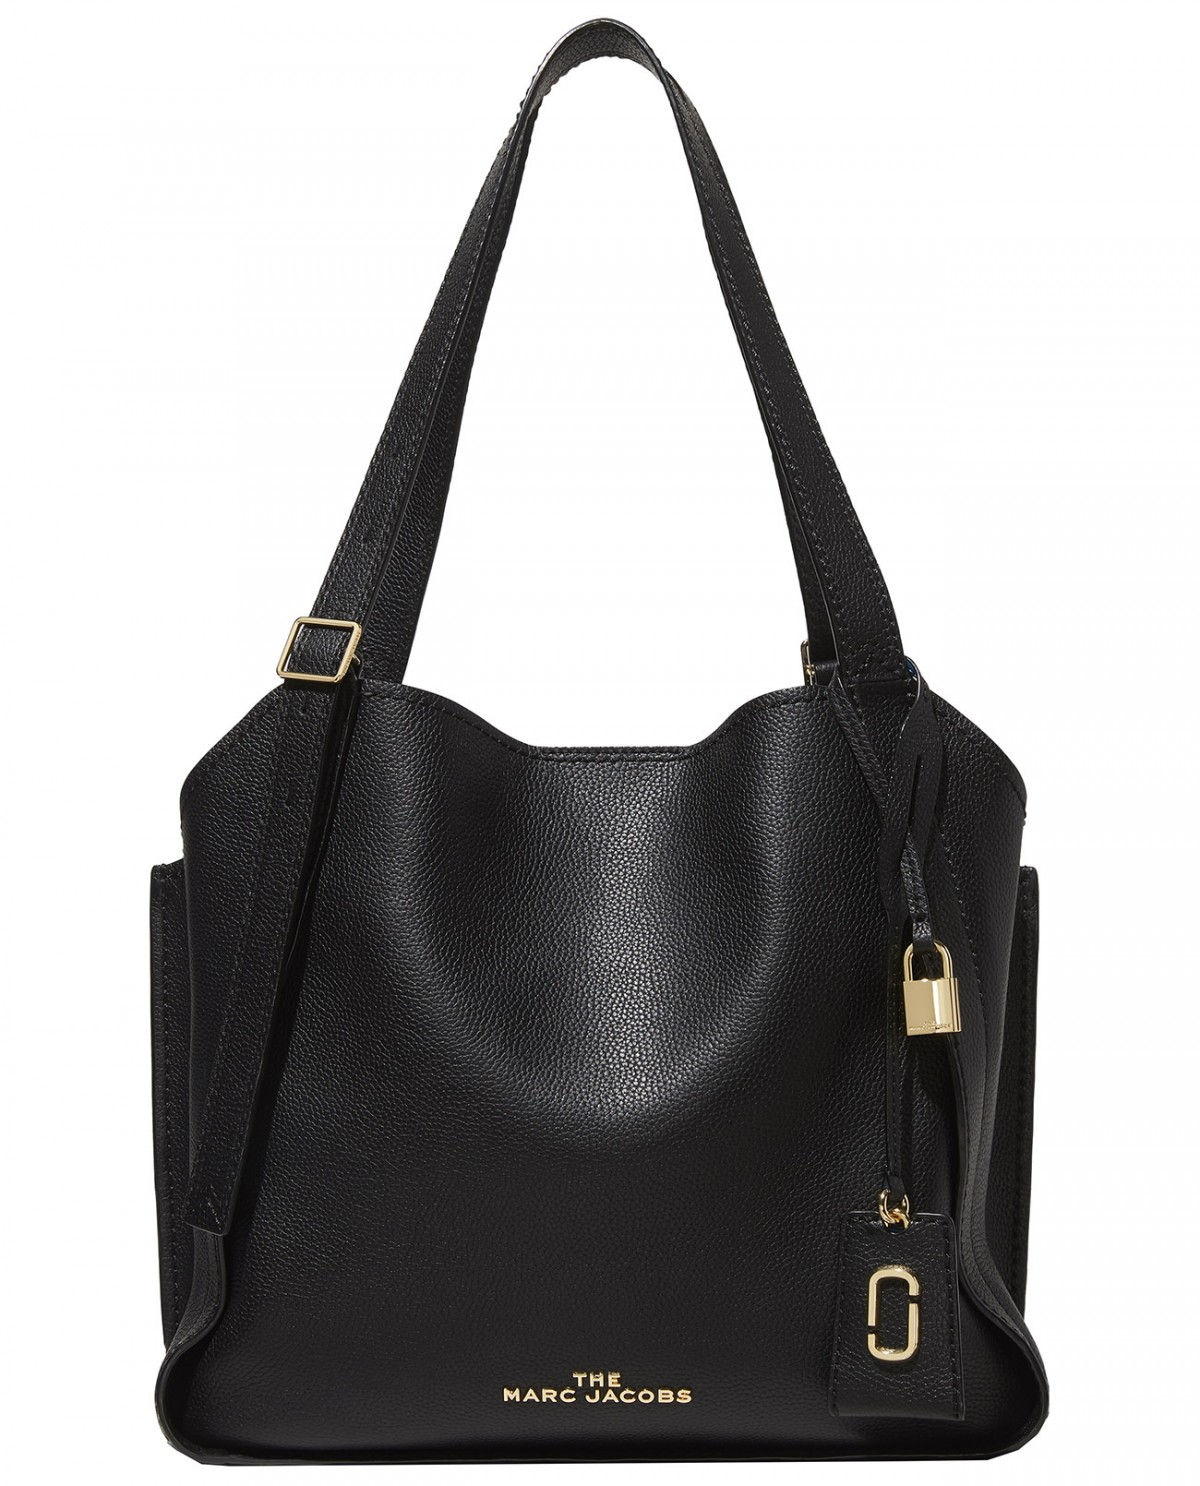 The Marc Jacobs black Director tote